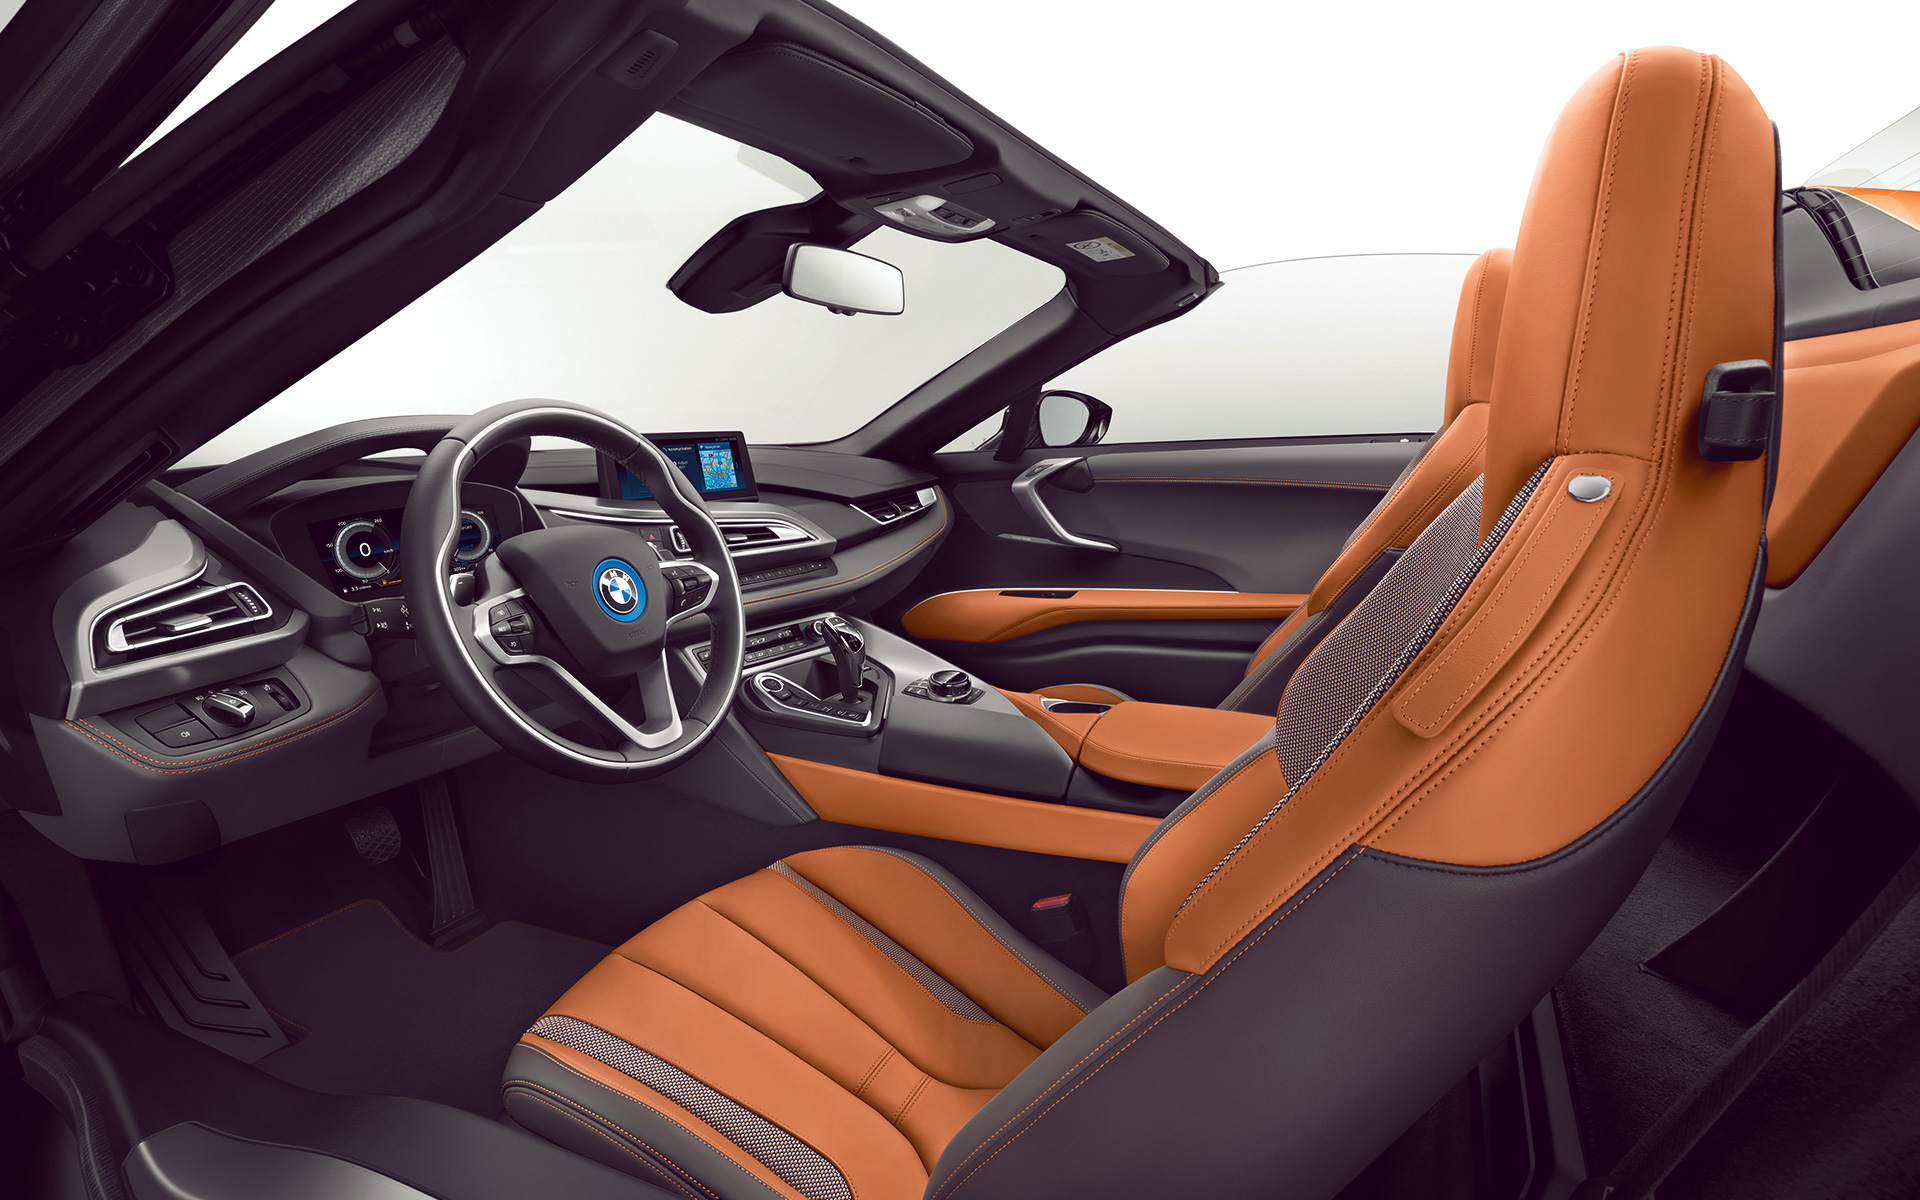 bmw i8 i8roadster home gallery lines 02 amido e copper I15